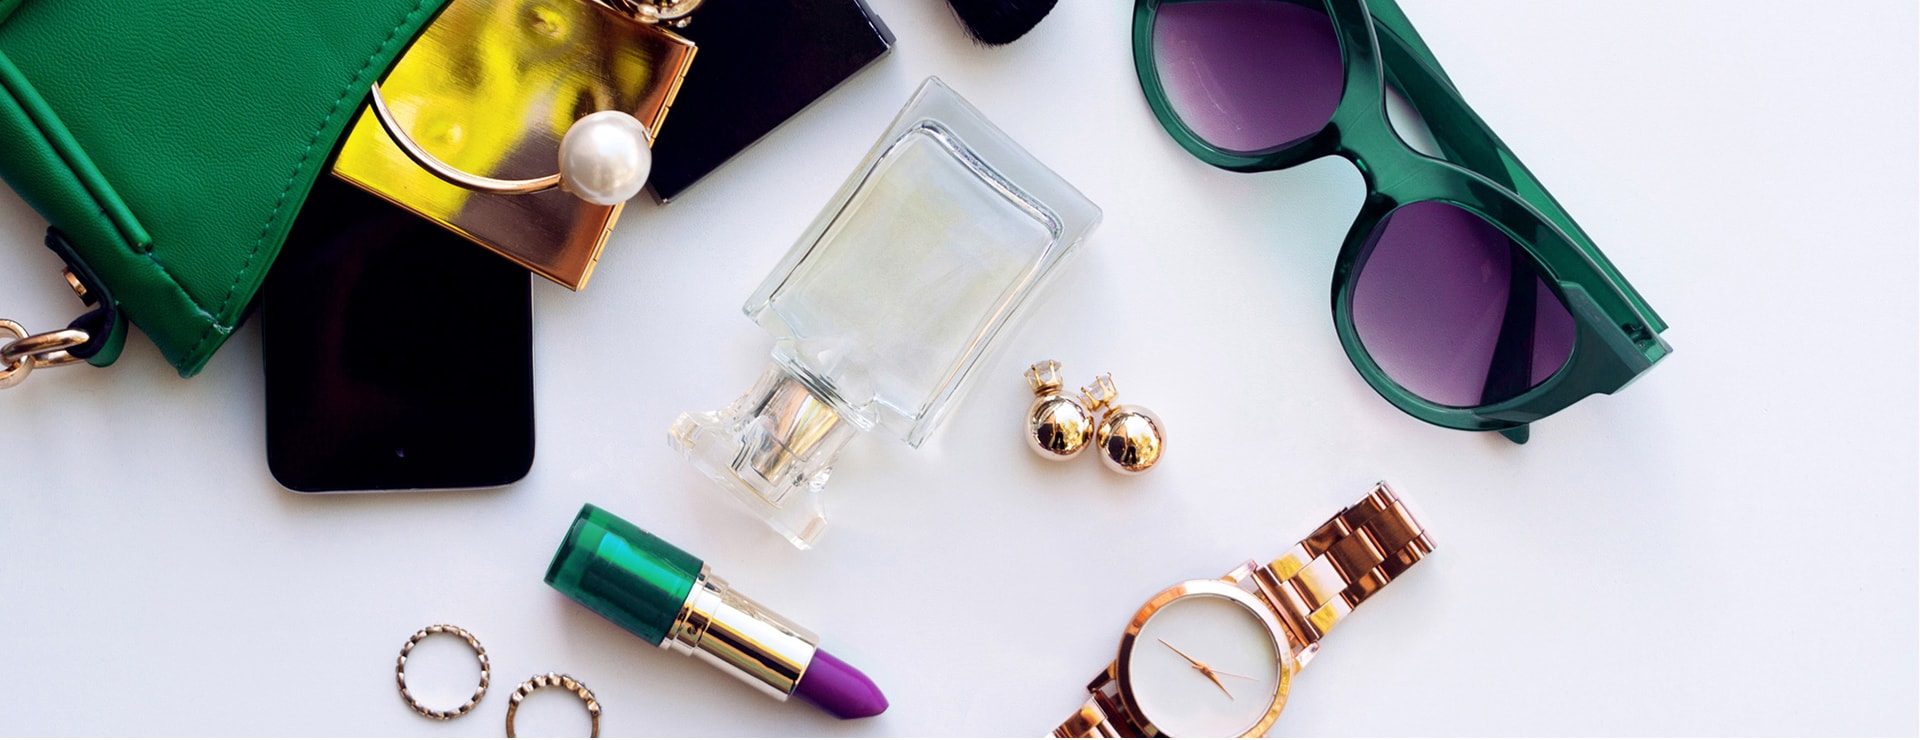 Best trend perfume and cosmetics